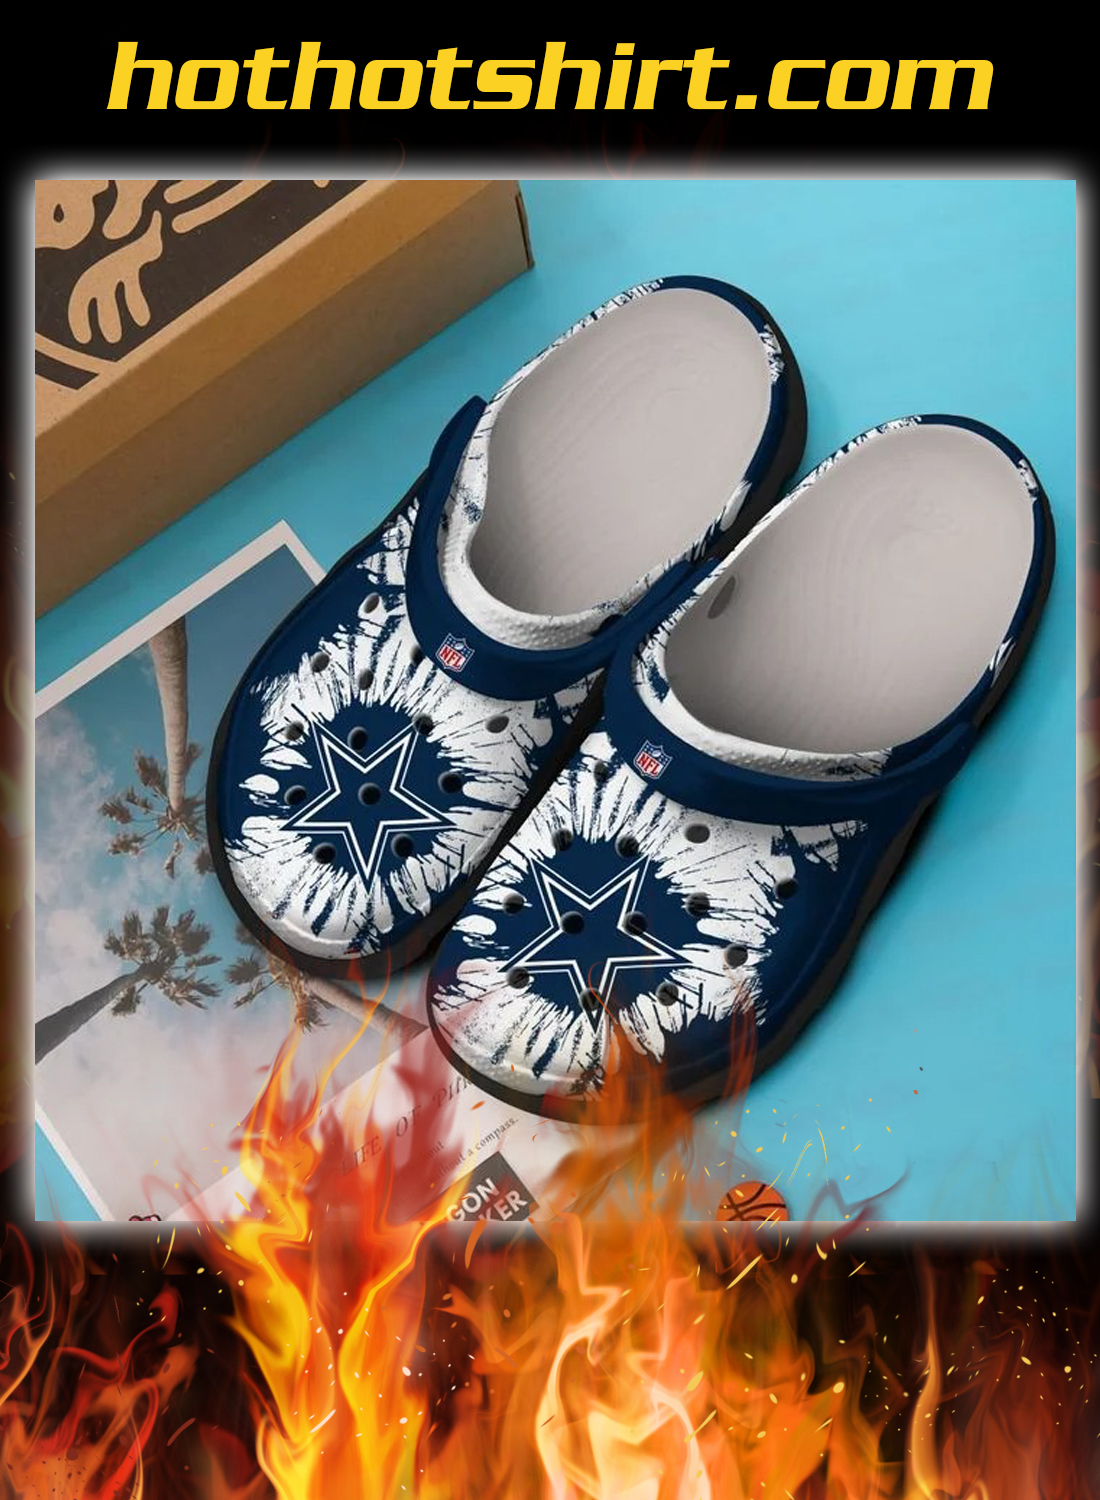 Dallas cowboys crocband crocs shoes - detail